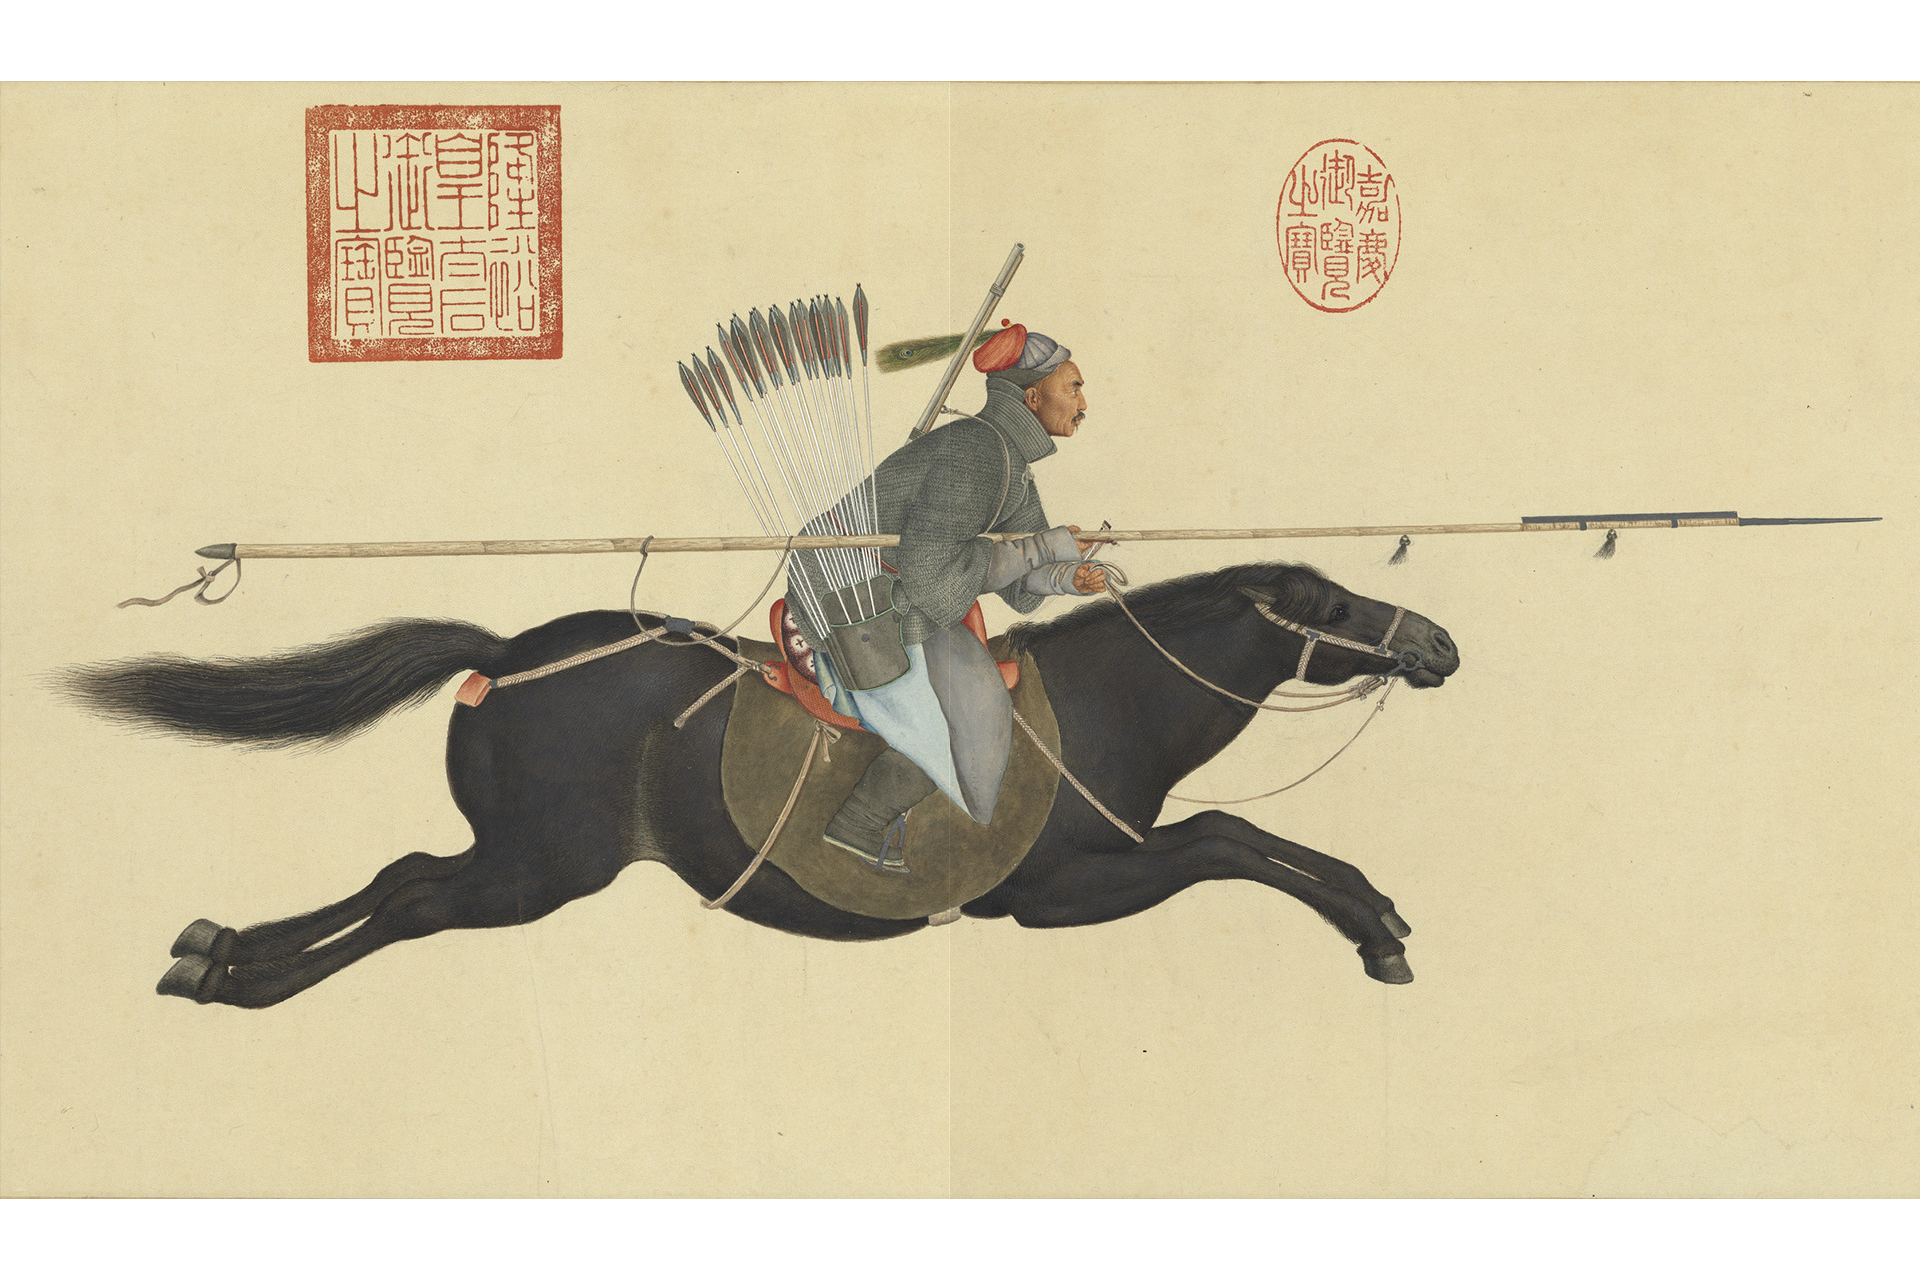 Ayusi Scattering Rebels with Upraised Spear, by Giuseppe Castiglione (Chinese name Lang Shining, 1688—1766), Handscroll, ink and color on paper, National Palace Museum, Taipei.